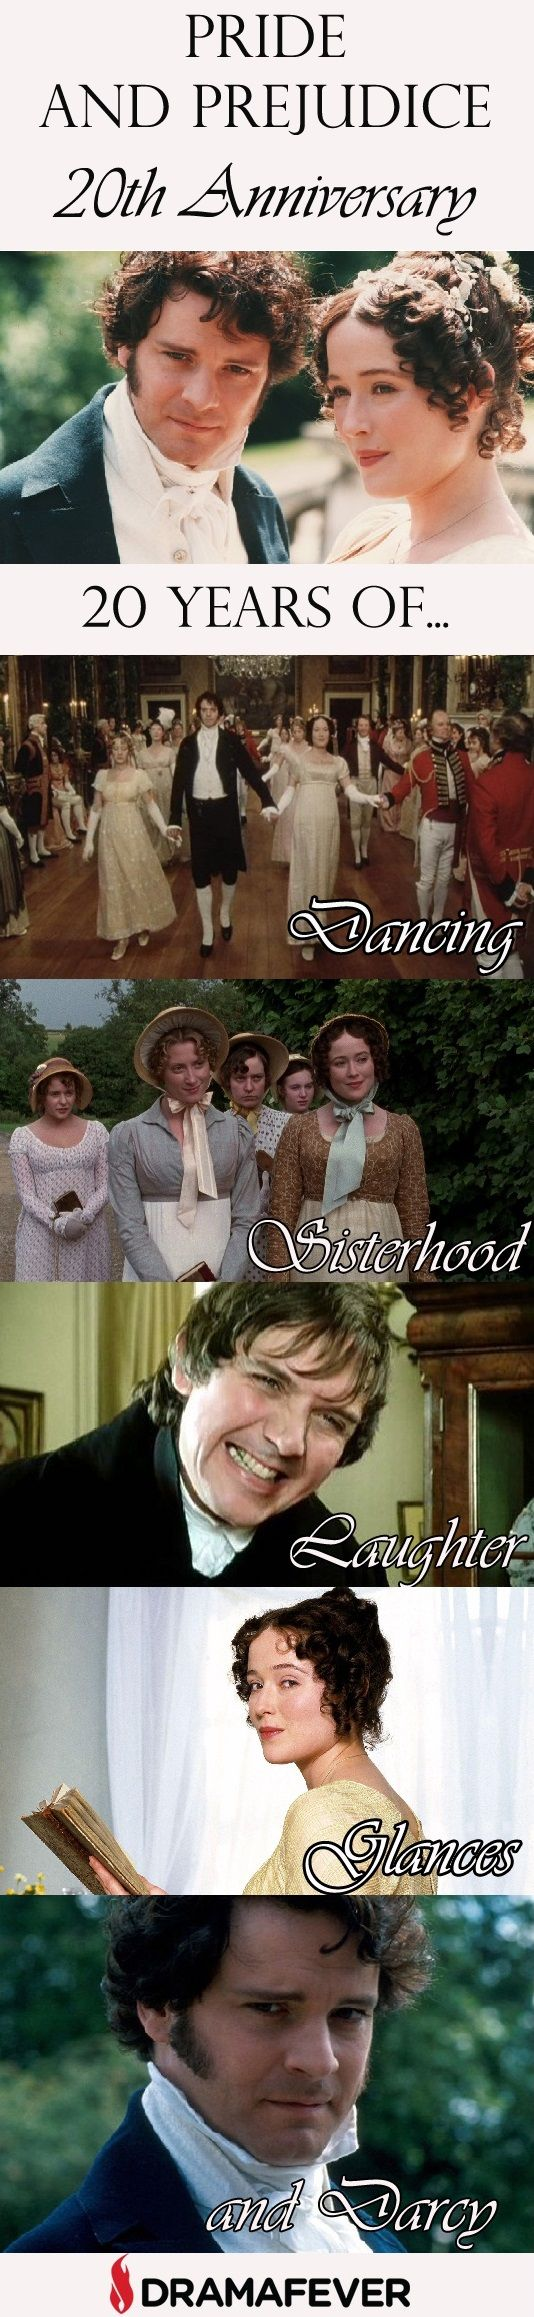 Celebrate the 20th anniversary of the 1995 BBC classic Pride and Prejudice by streaming it on DramaFever!